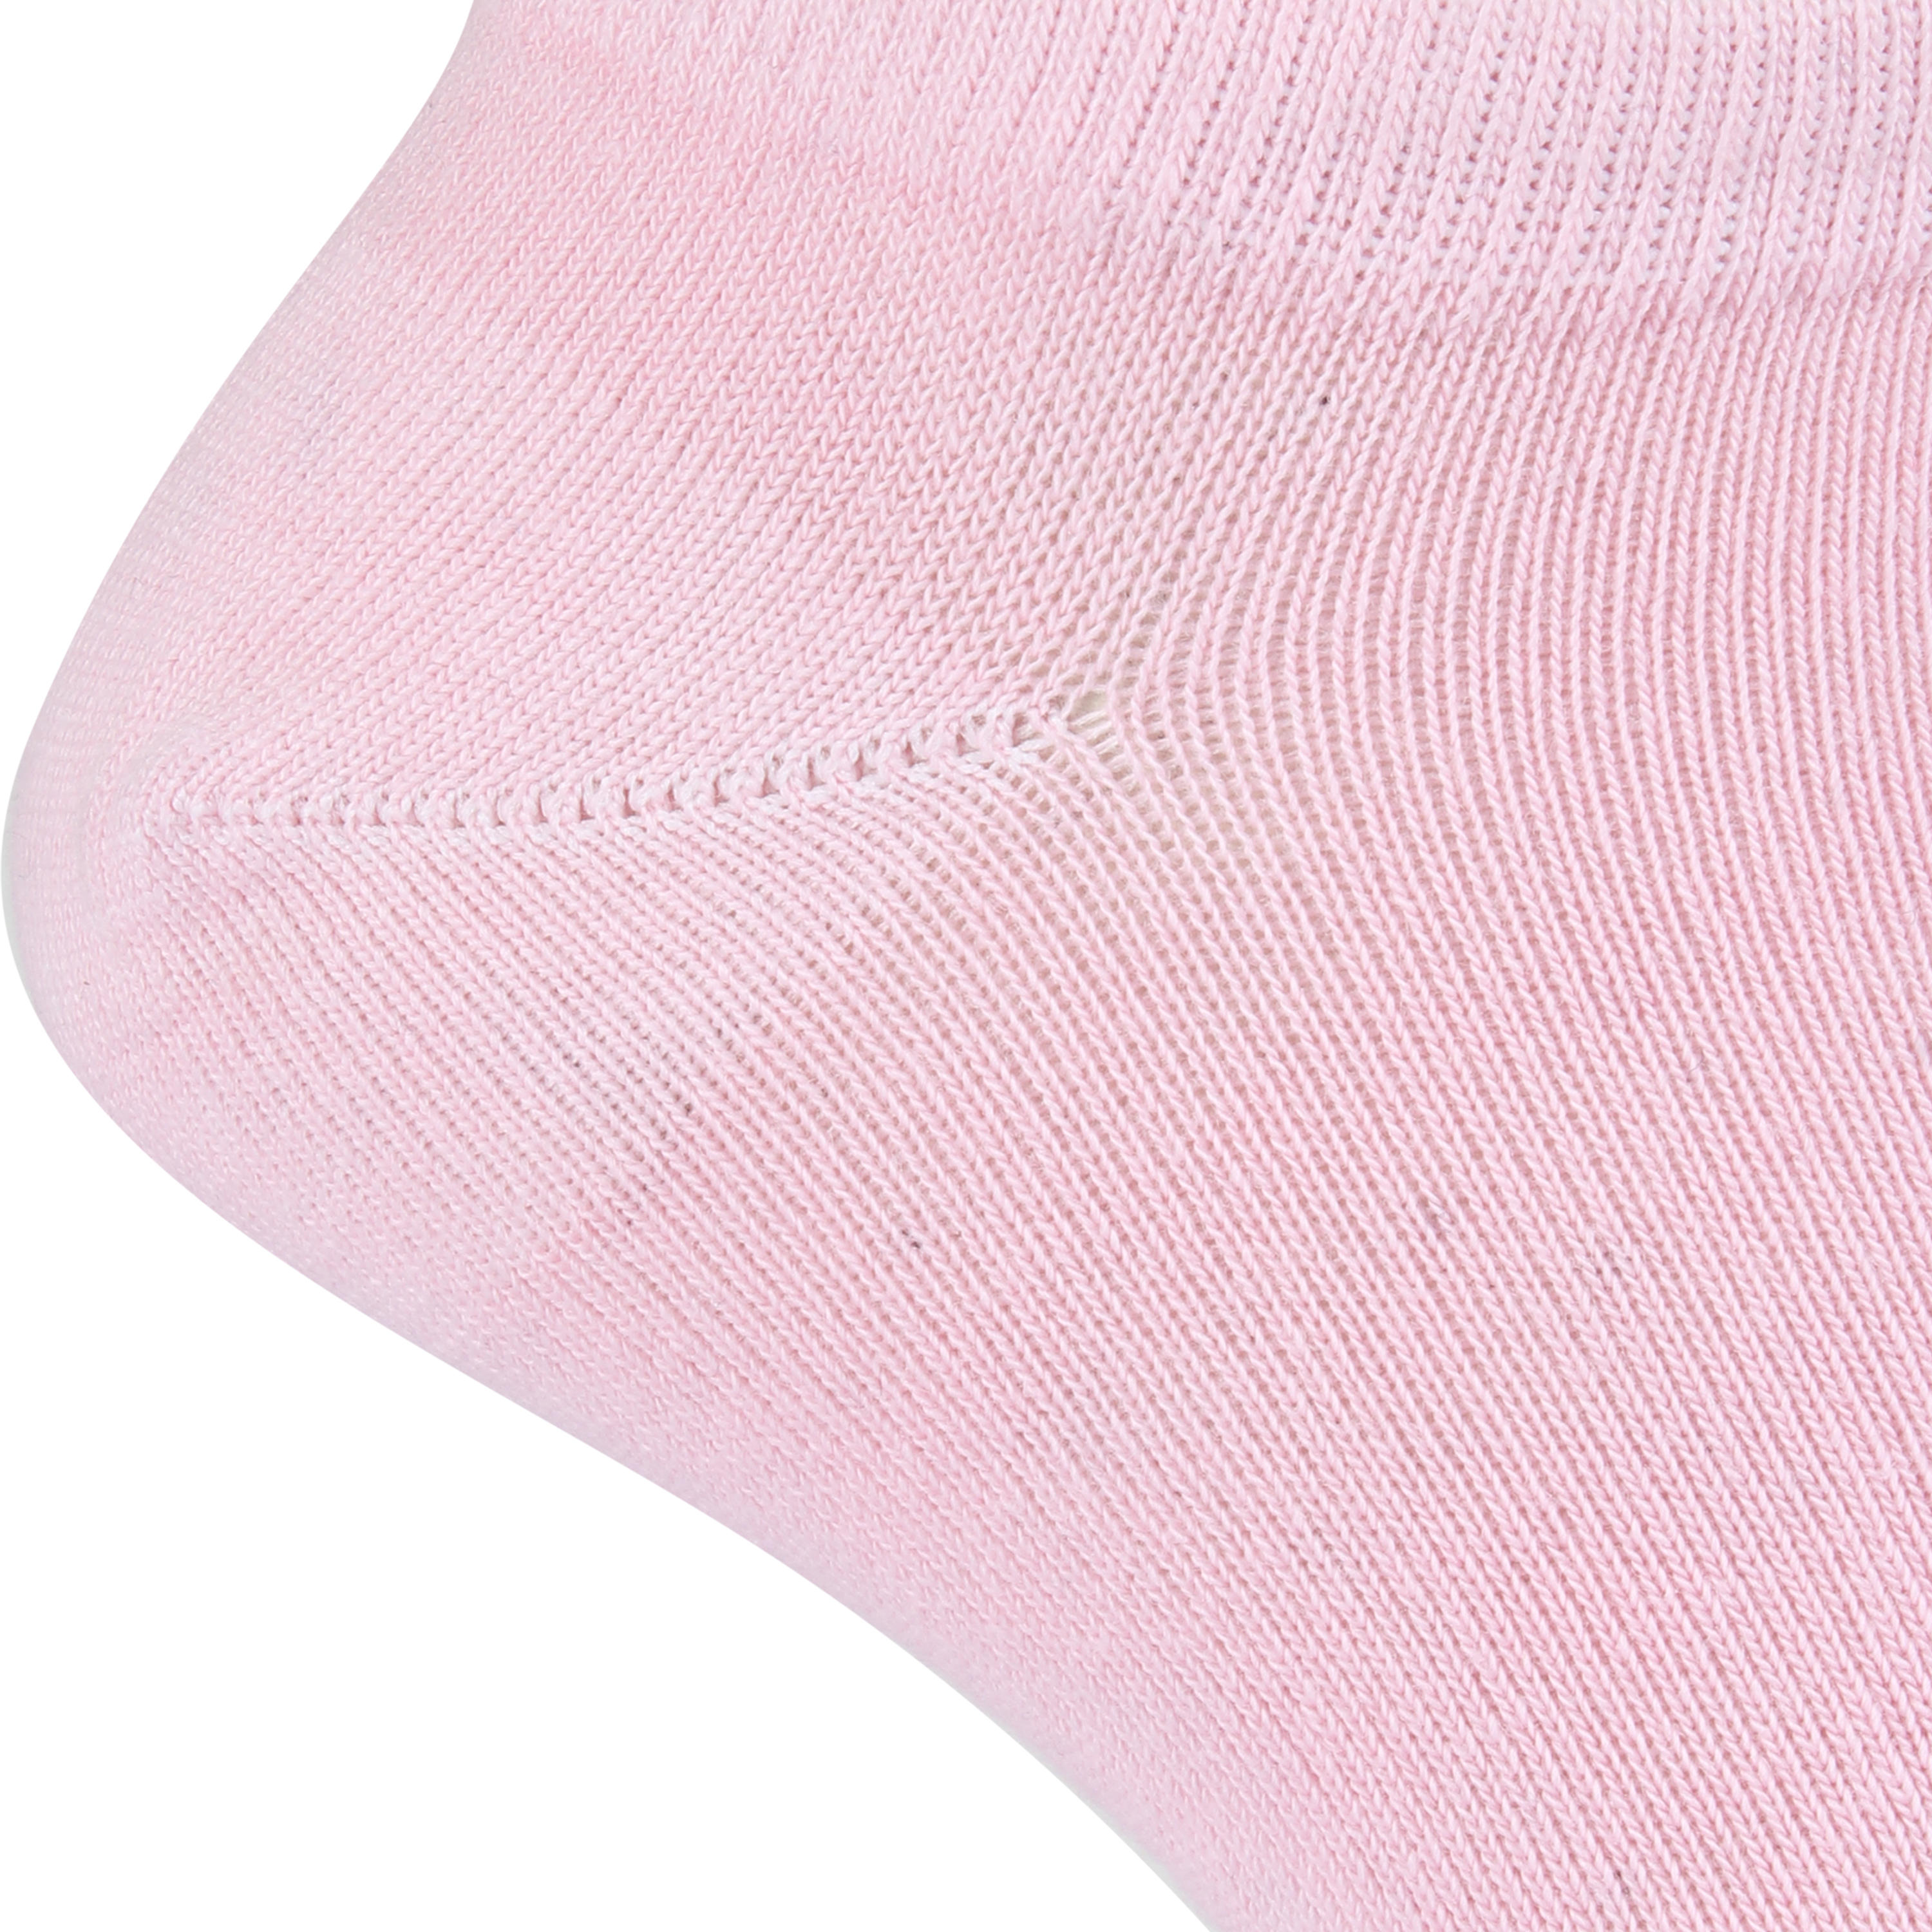 ANKLE SOCKS PINK - RS160